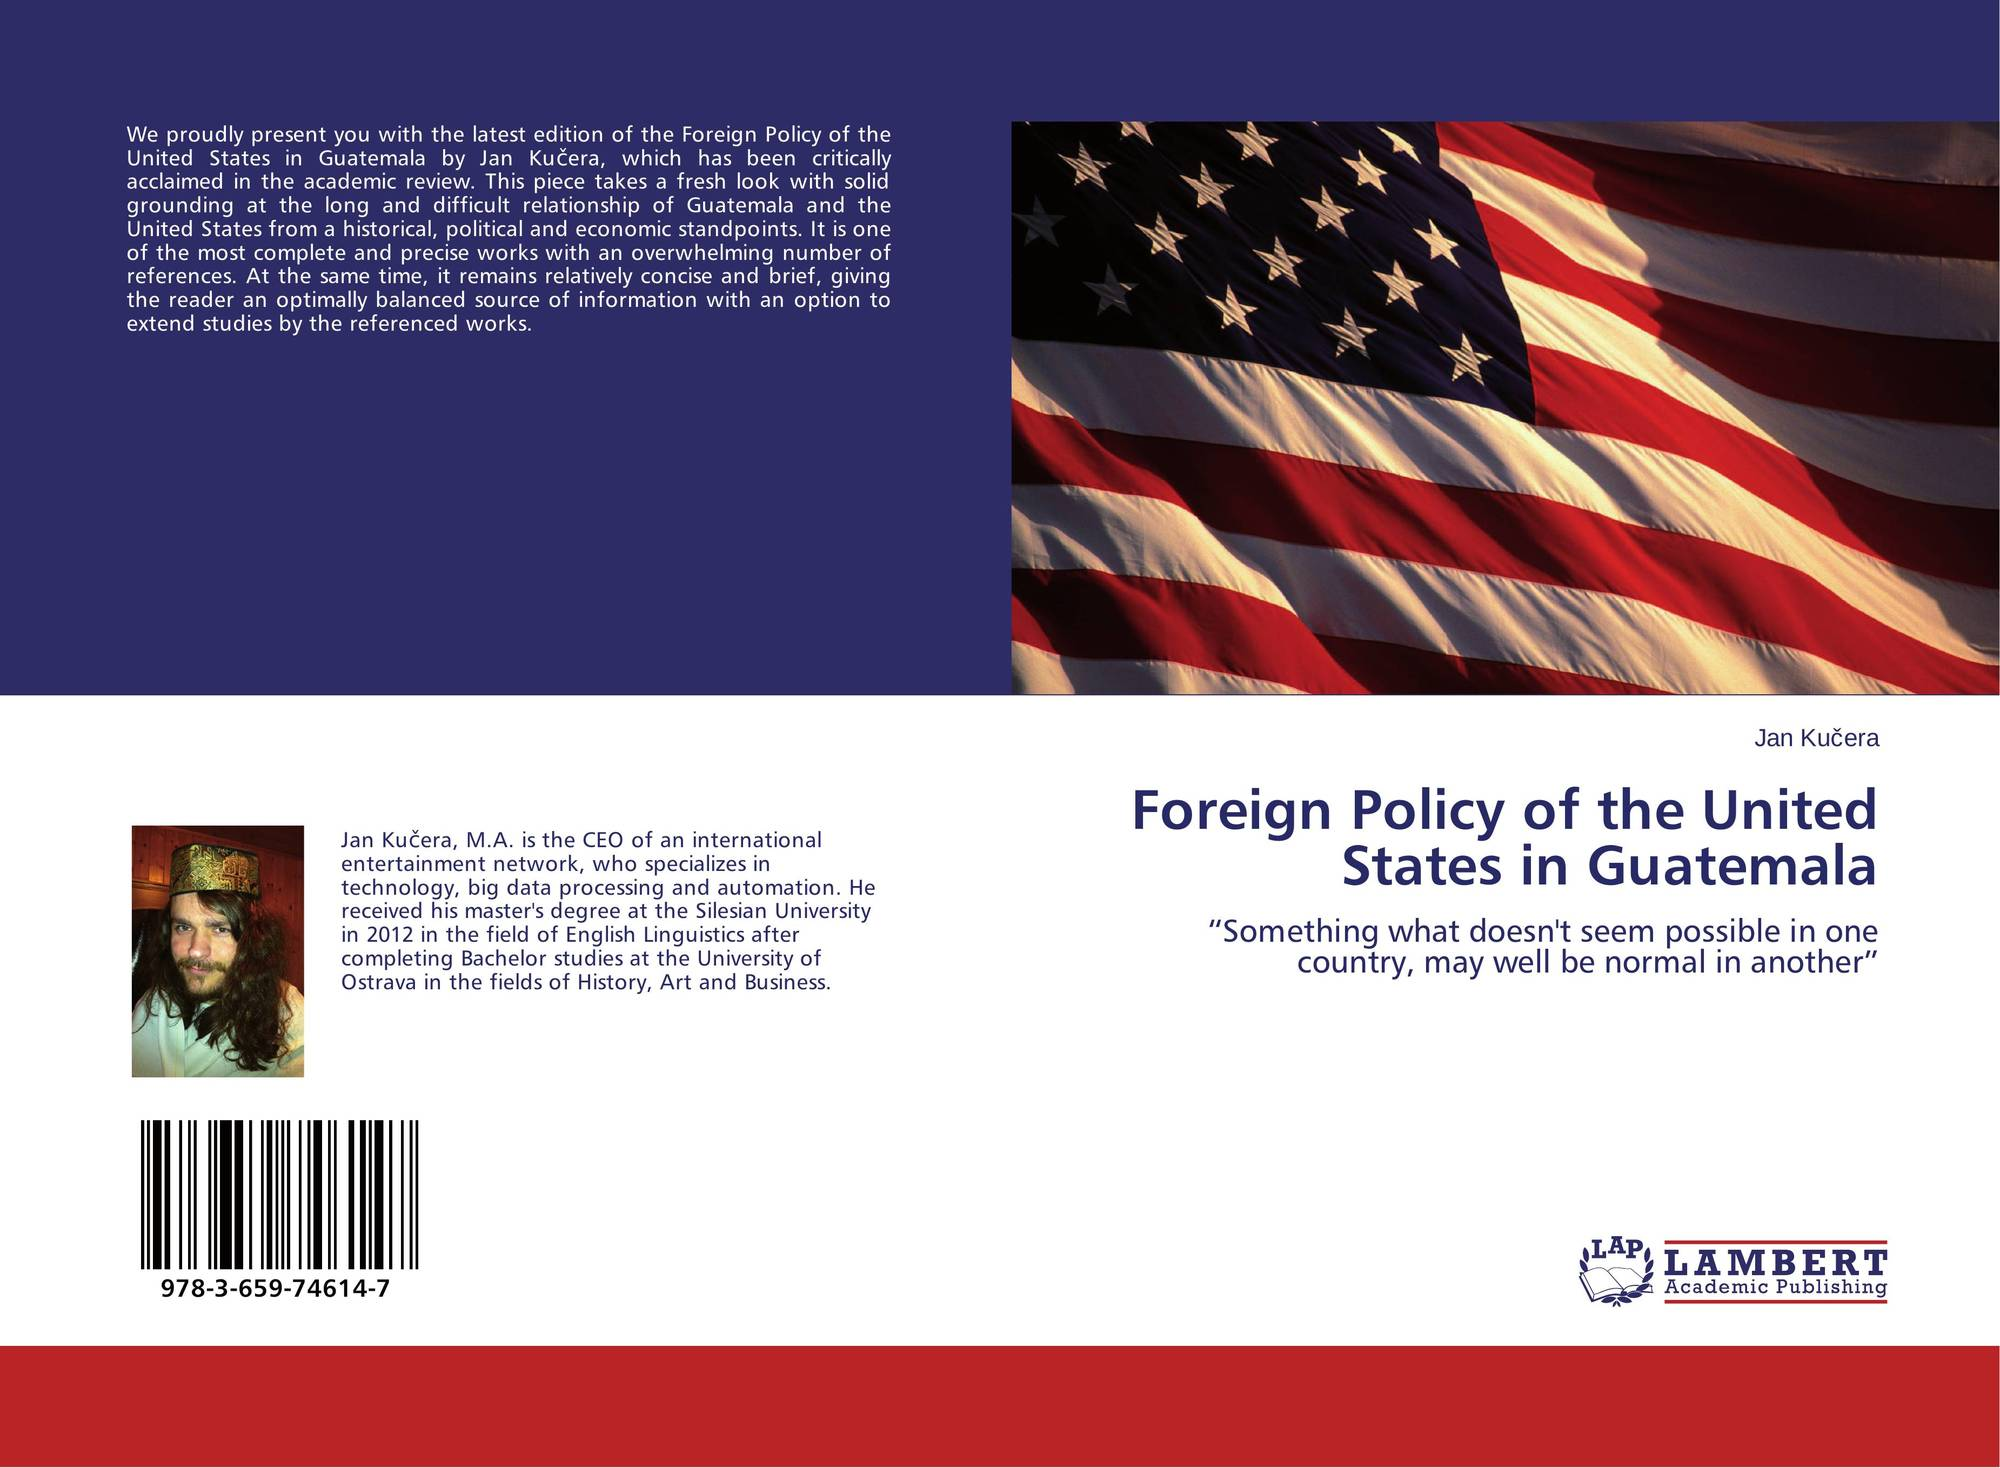 an analysis of the three types of the united states foreign policies The united states provides foreign aid of various kinds to at least 95% of the countries in the world, though a far smaller number of countries receive any substantial aid in terms of dollars.